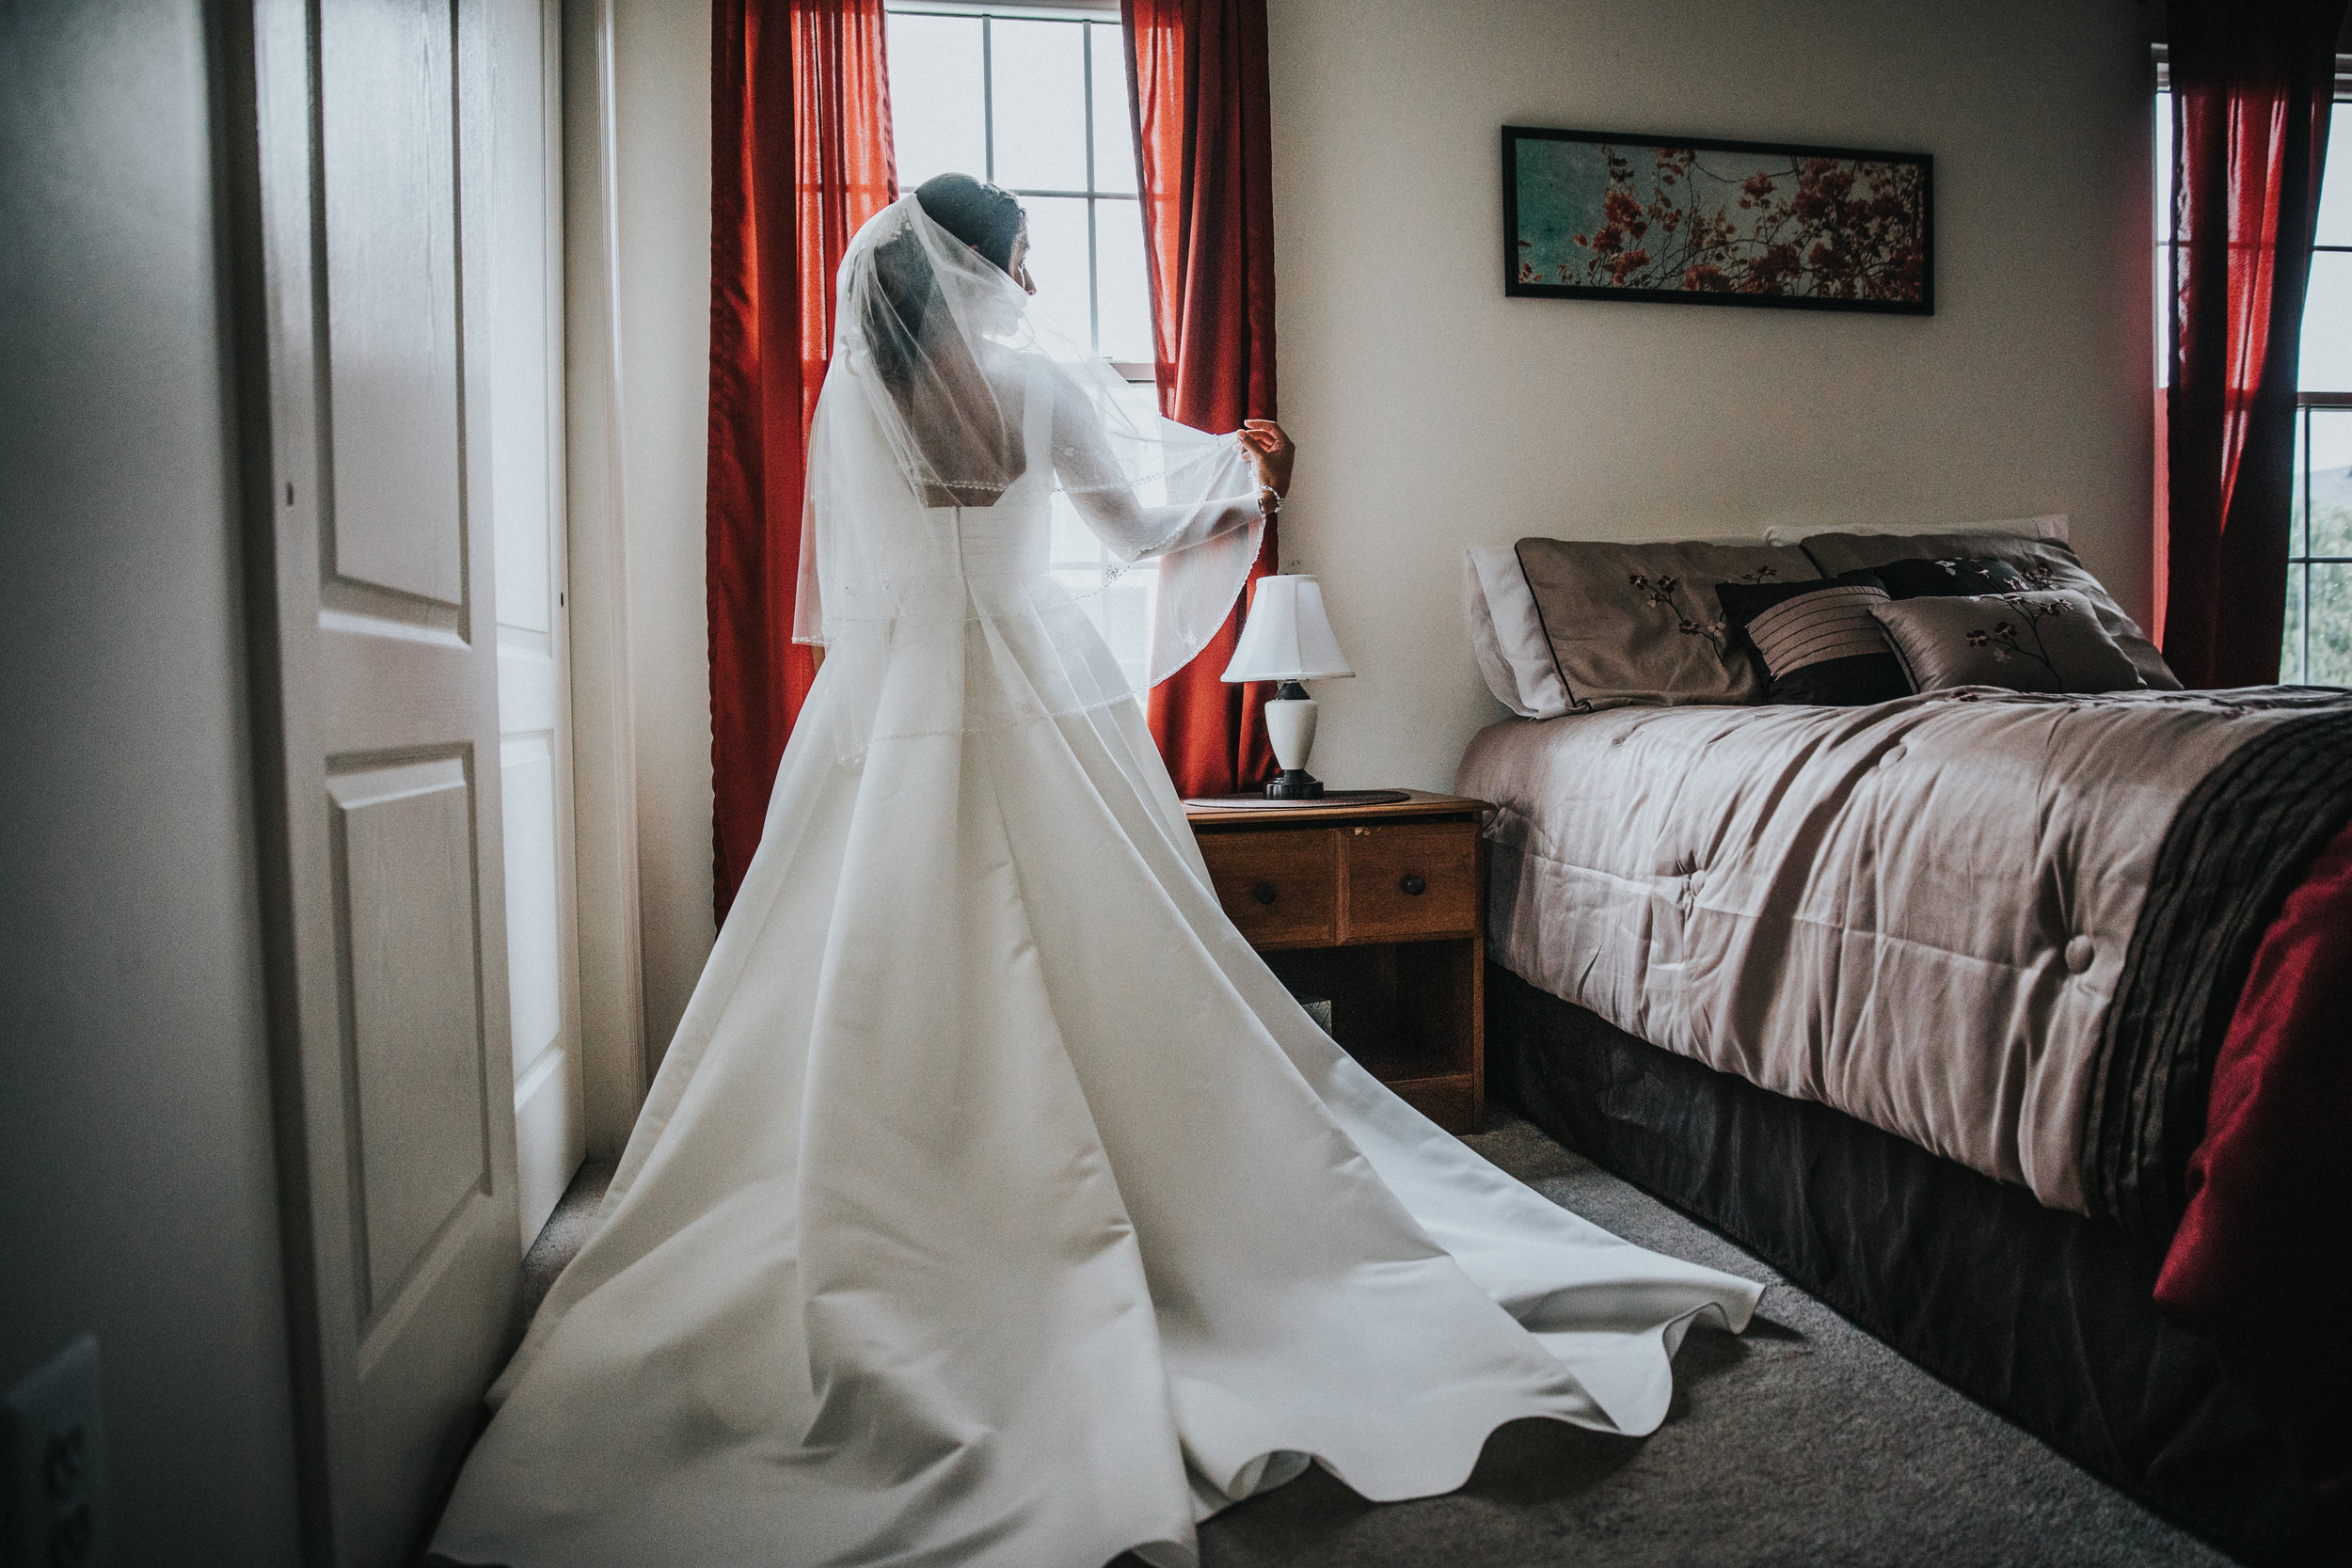 New-Jersey-Wedding-Photographer-Jenna-Lynn-Photography-Wedding-Brigalias-Ashley&Sal-GettingReady-49.jpg